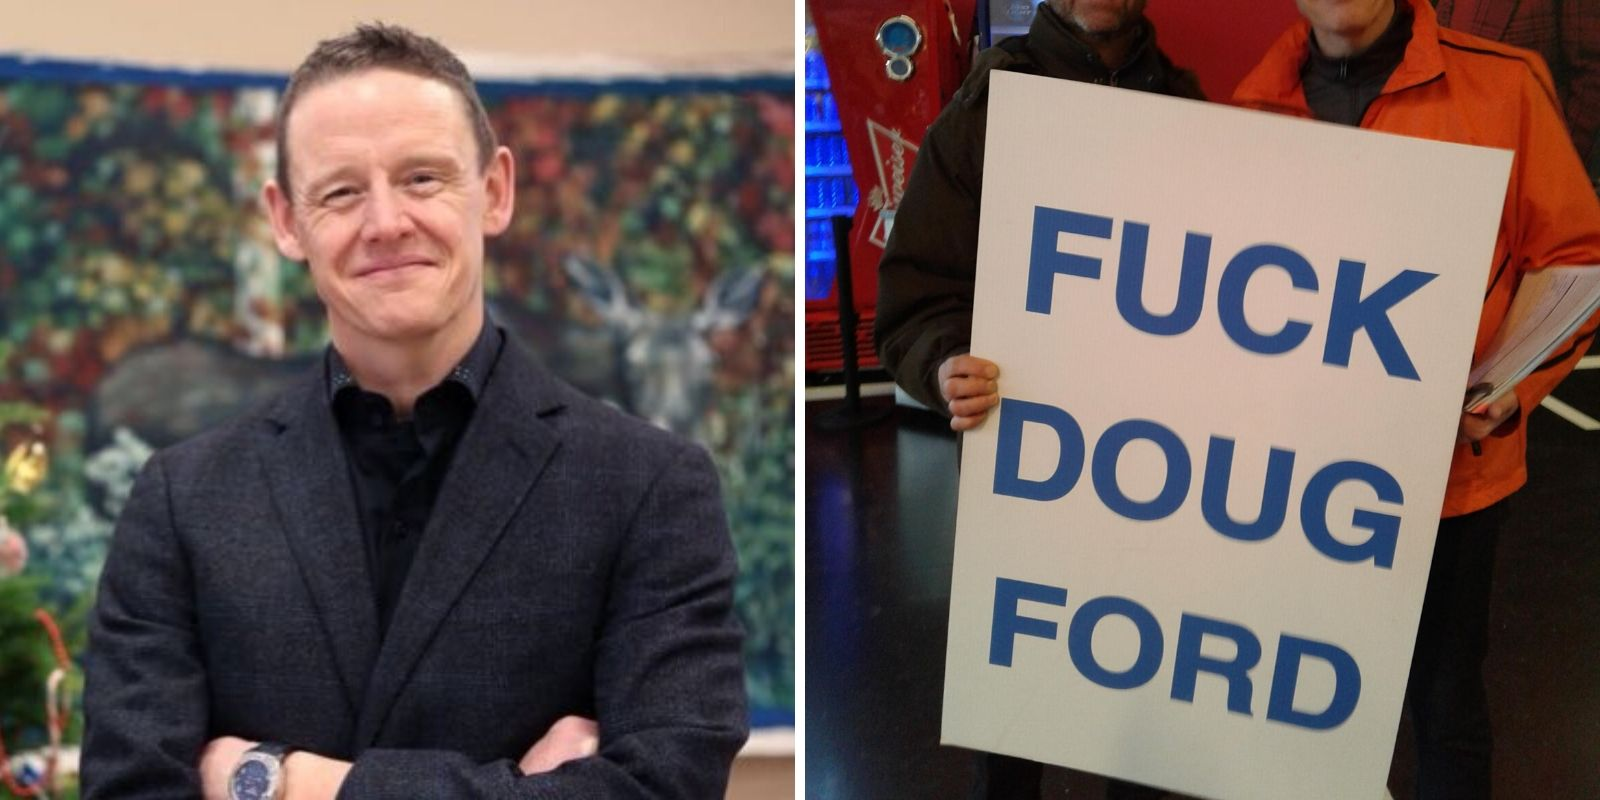 Ontario NDP MPP apologizes for posing with 'F*CK DOUG FORD' sign